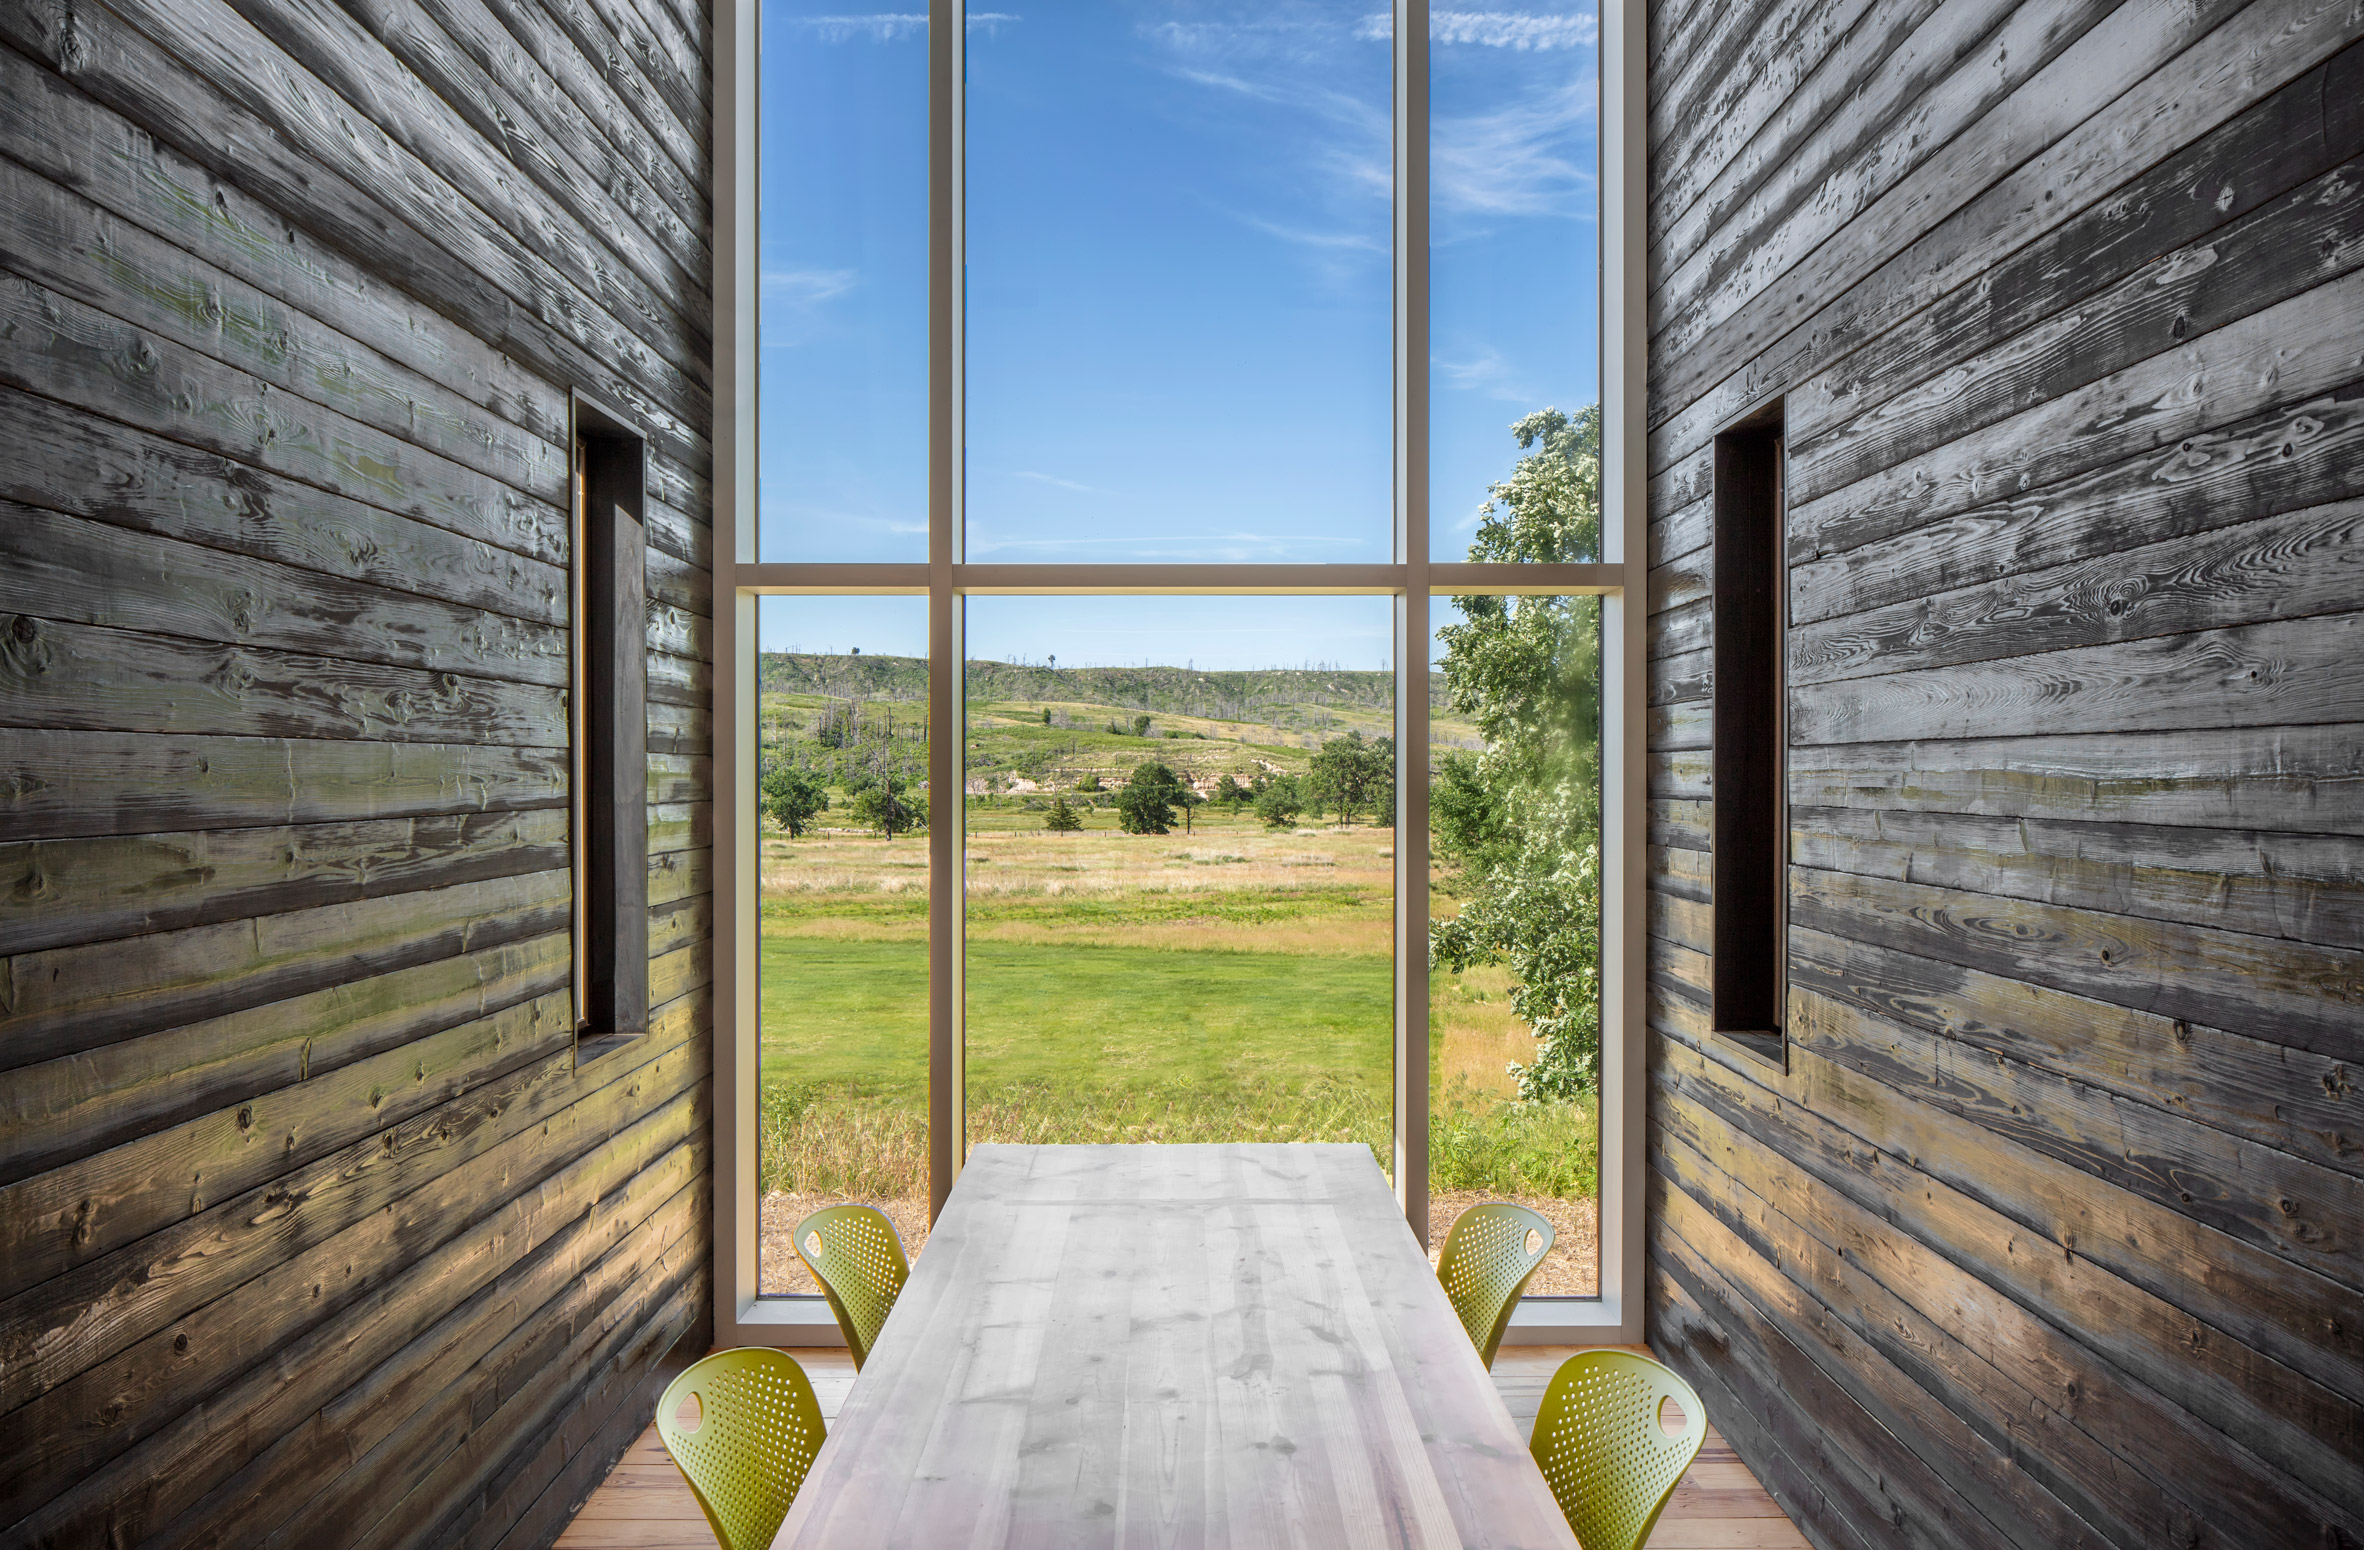 Niobrara River Valley Preserve Visitors Center by BVH Architecture